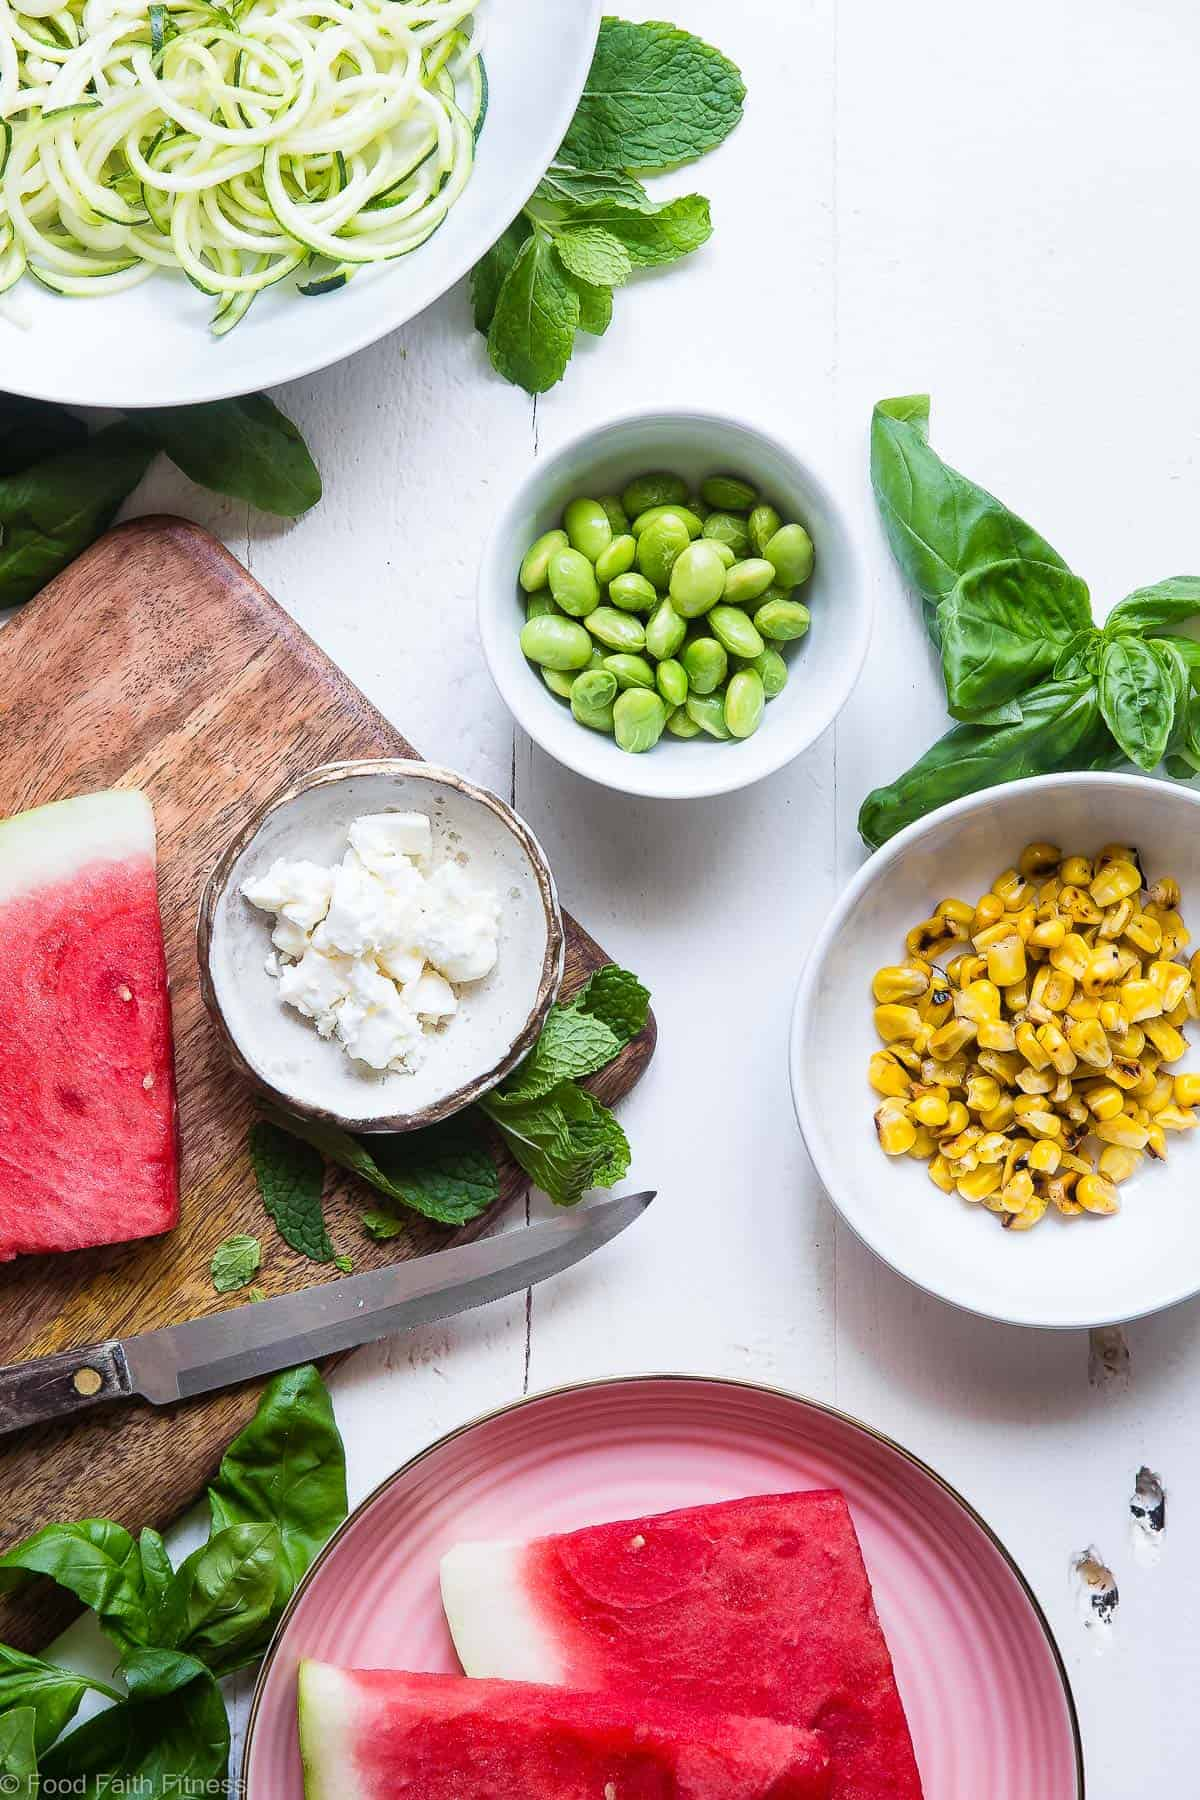 Summer Grilled Corn and Watermelon Power Bowls - Loaded with bright, fresh, Summer flavors and packed with plant based protein! These tangy, sweet and DELICIOUS bowls are going to be your go to for easy, weeknight Summer dinners! | #Foodfaithfitness | #Glutenfree #Healthy #Vegetarian #Watermelon #Corn